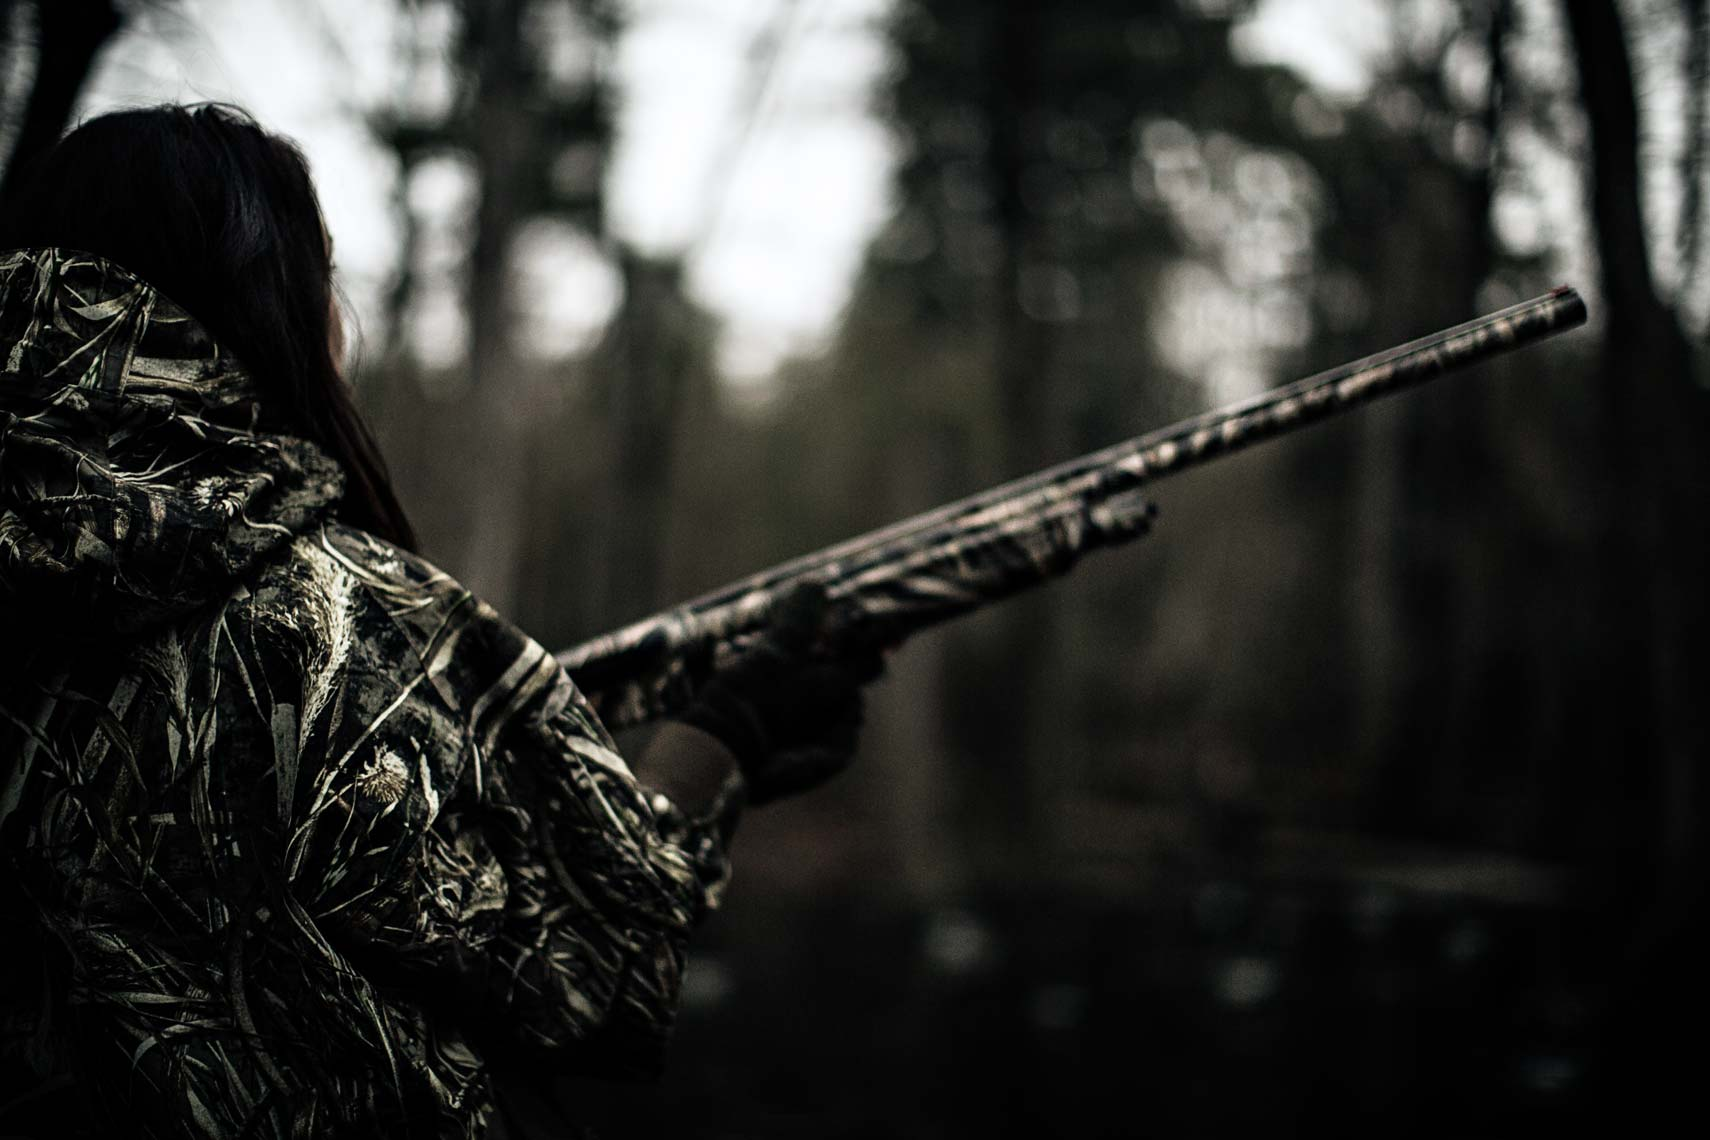 Photograph of female duck hunter with gun by lifestyle photographer Nick Burchell